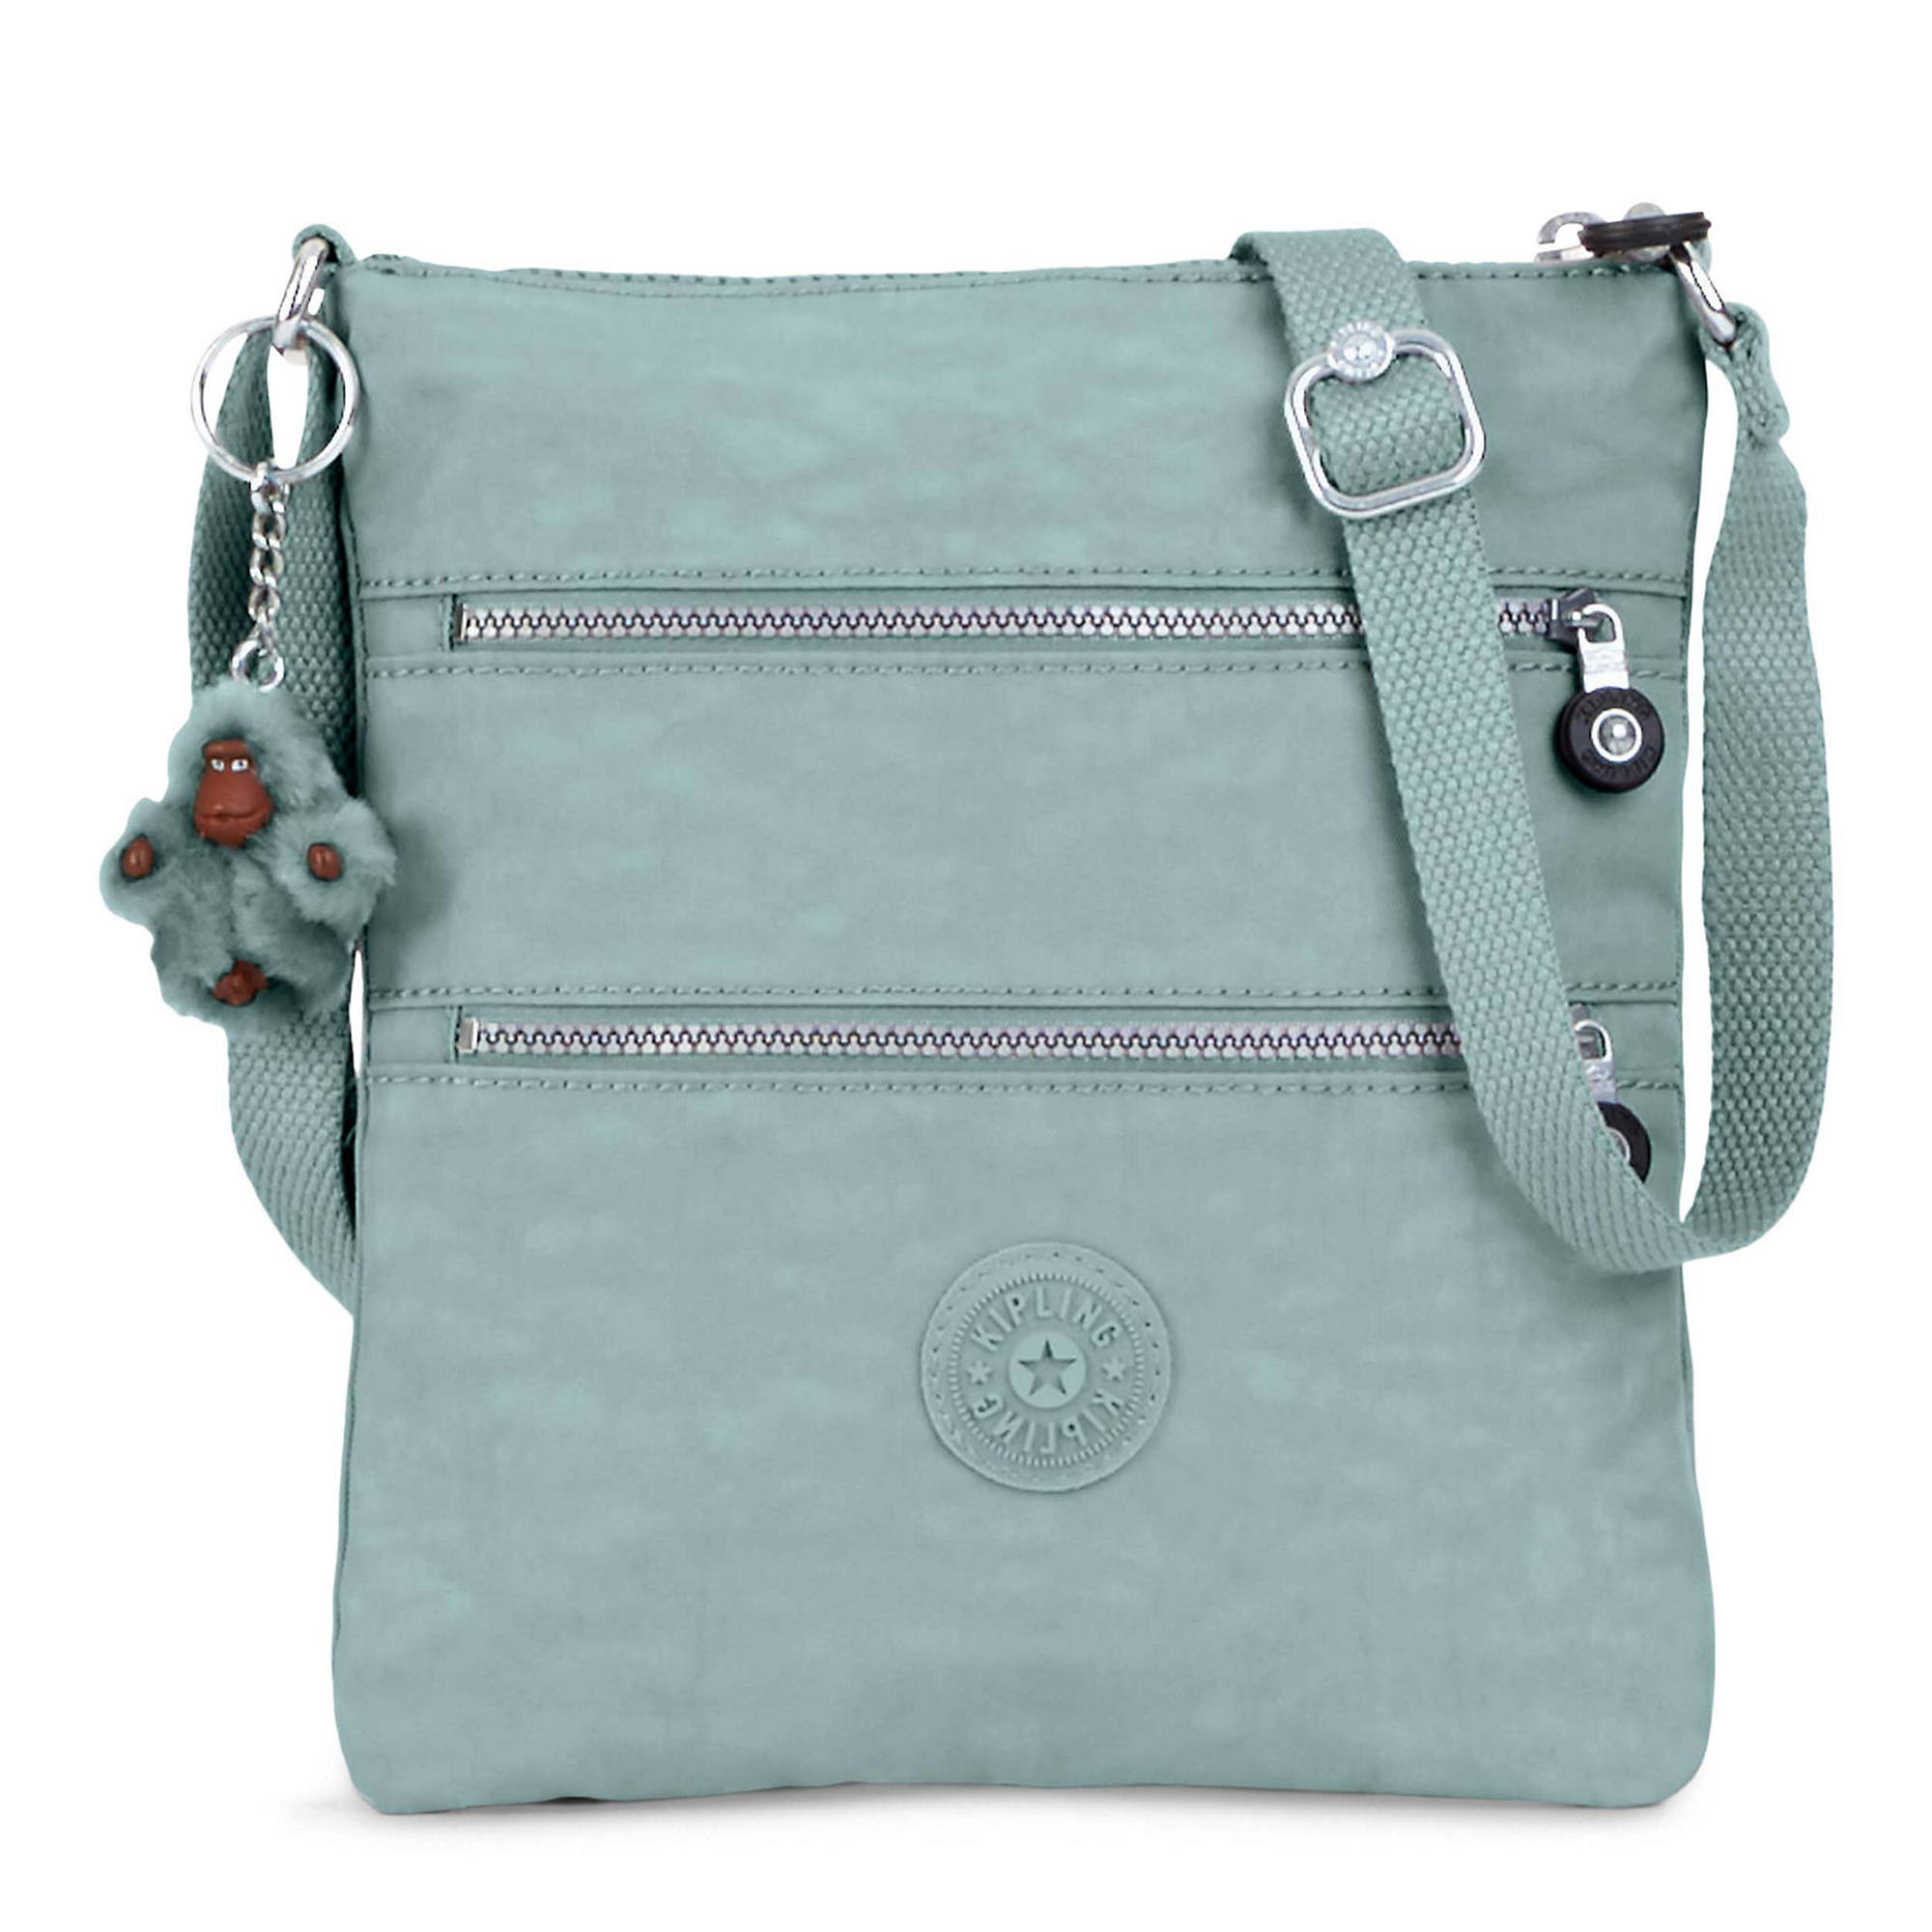 Keiko Crossbody Mini Bag - Smoke Blue